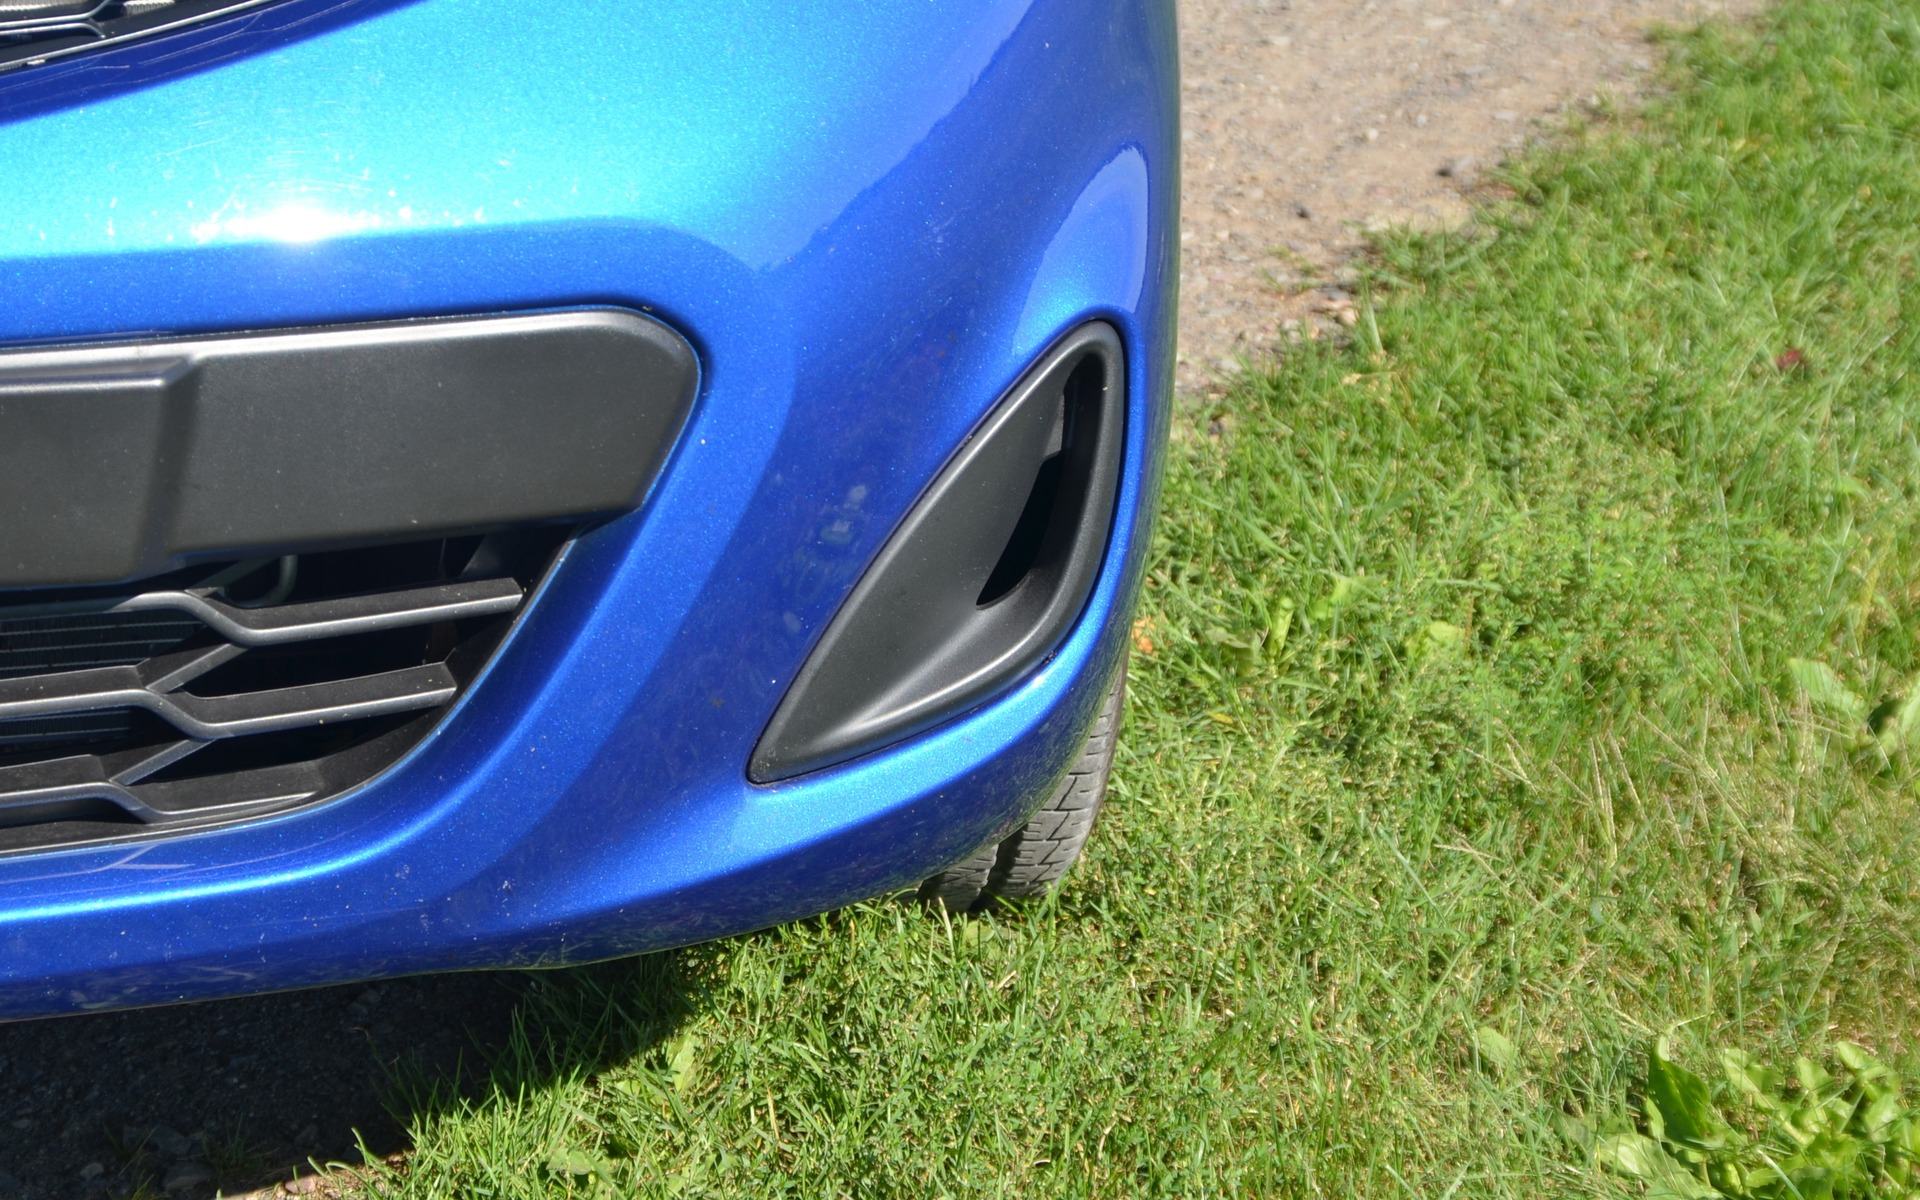 A real air intake, like you find on sports cars!